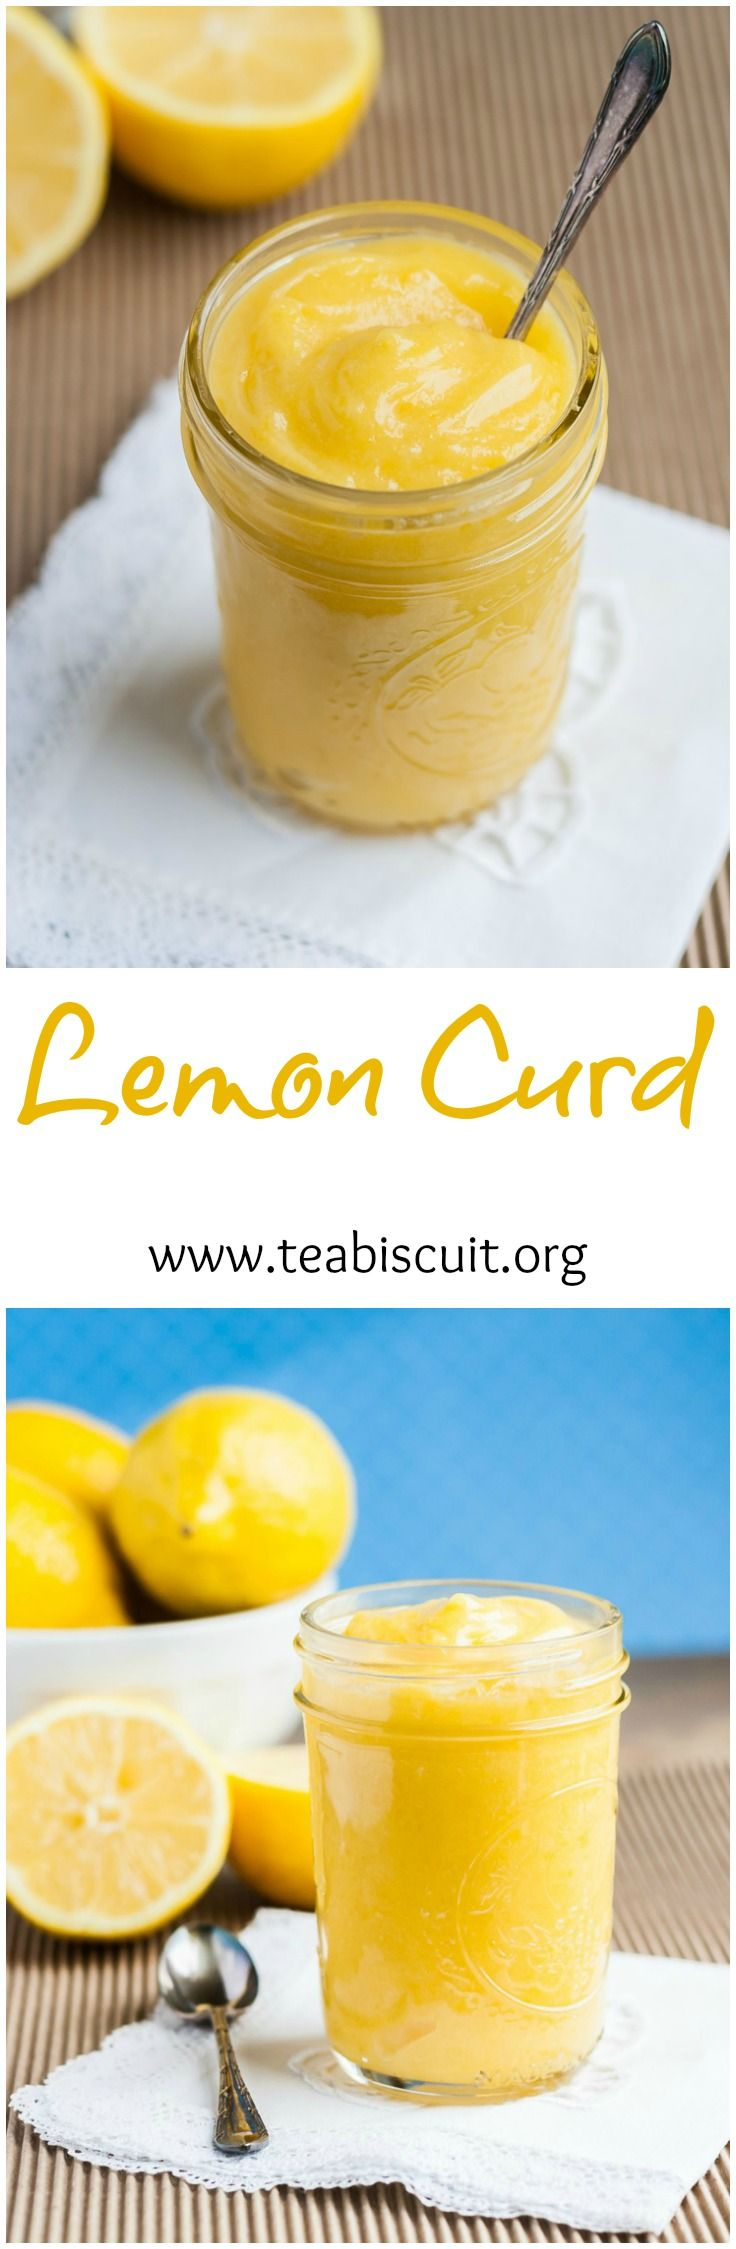 Quick and Easy recipe for Lemon Curd that can be made dairy free or with butter | www.teabiscuit.org